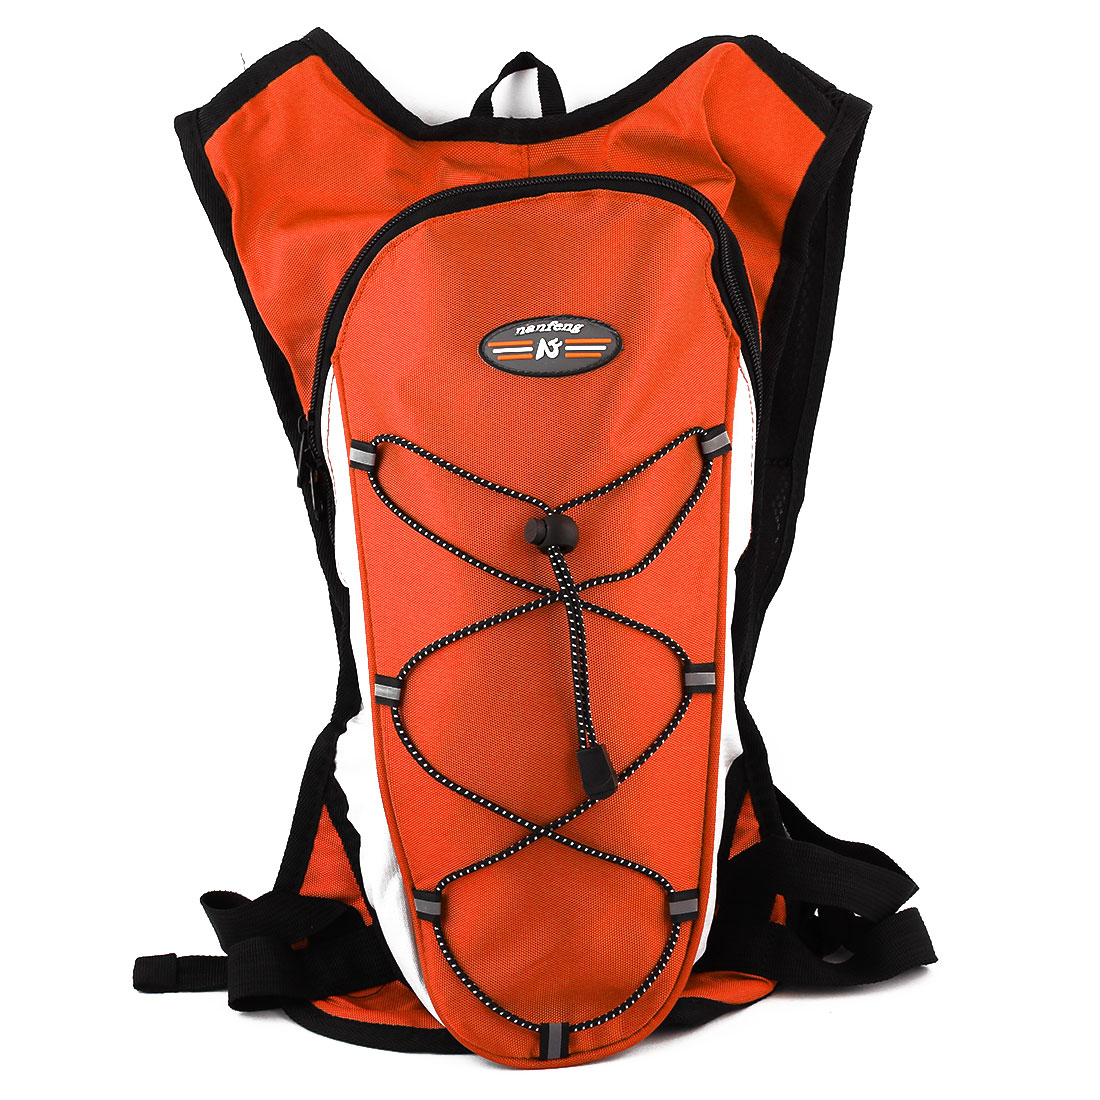 Outdoor Hiking Camping Cycling Water Bladder Bag Hydration Backpack Pack Orange by Unique-Bargains